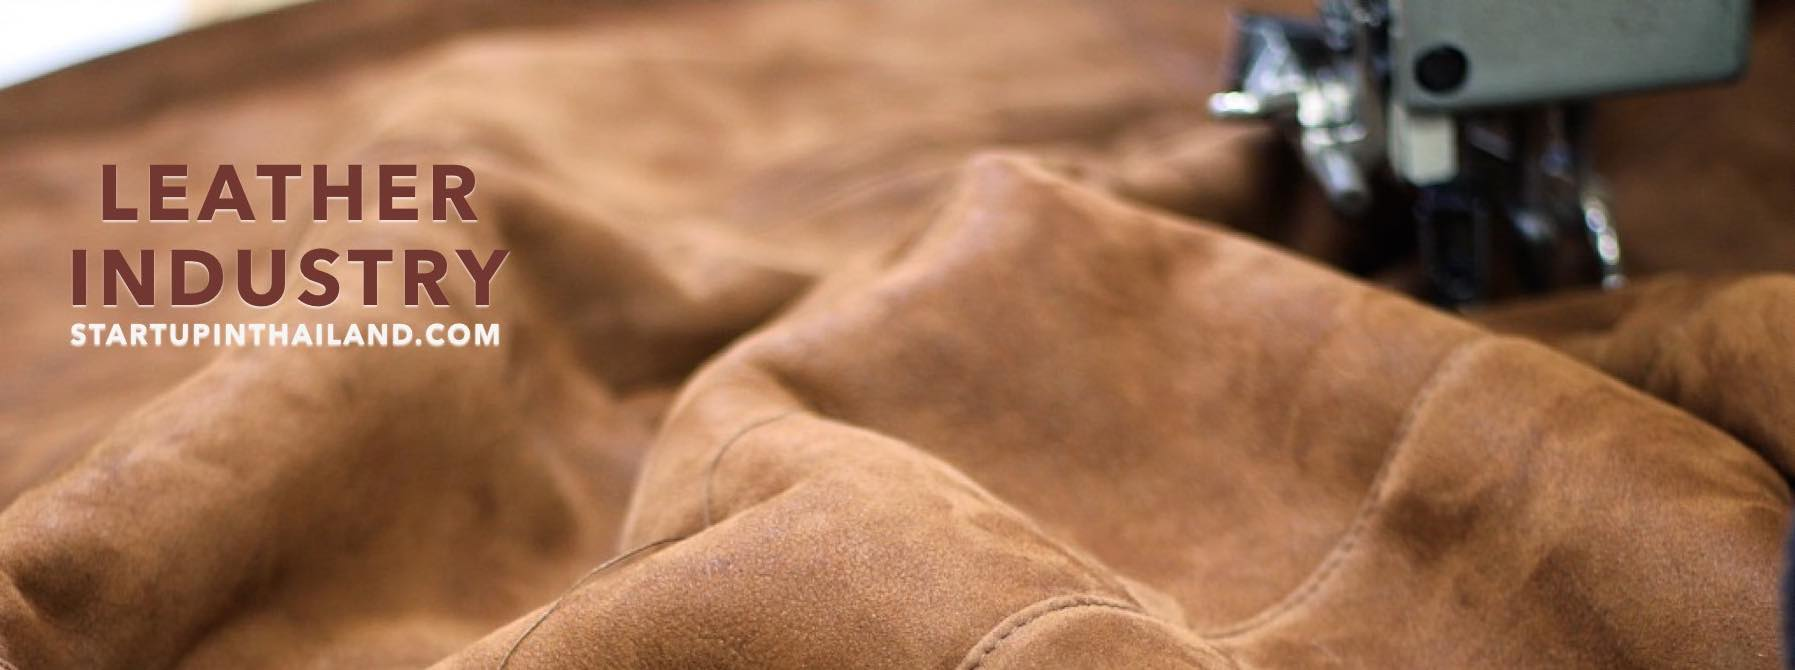 A brown leather sewed by a sewing machine